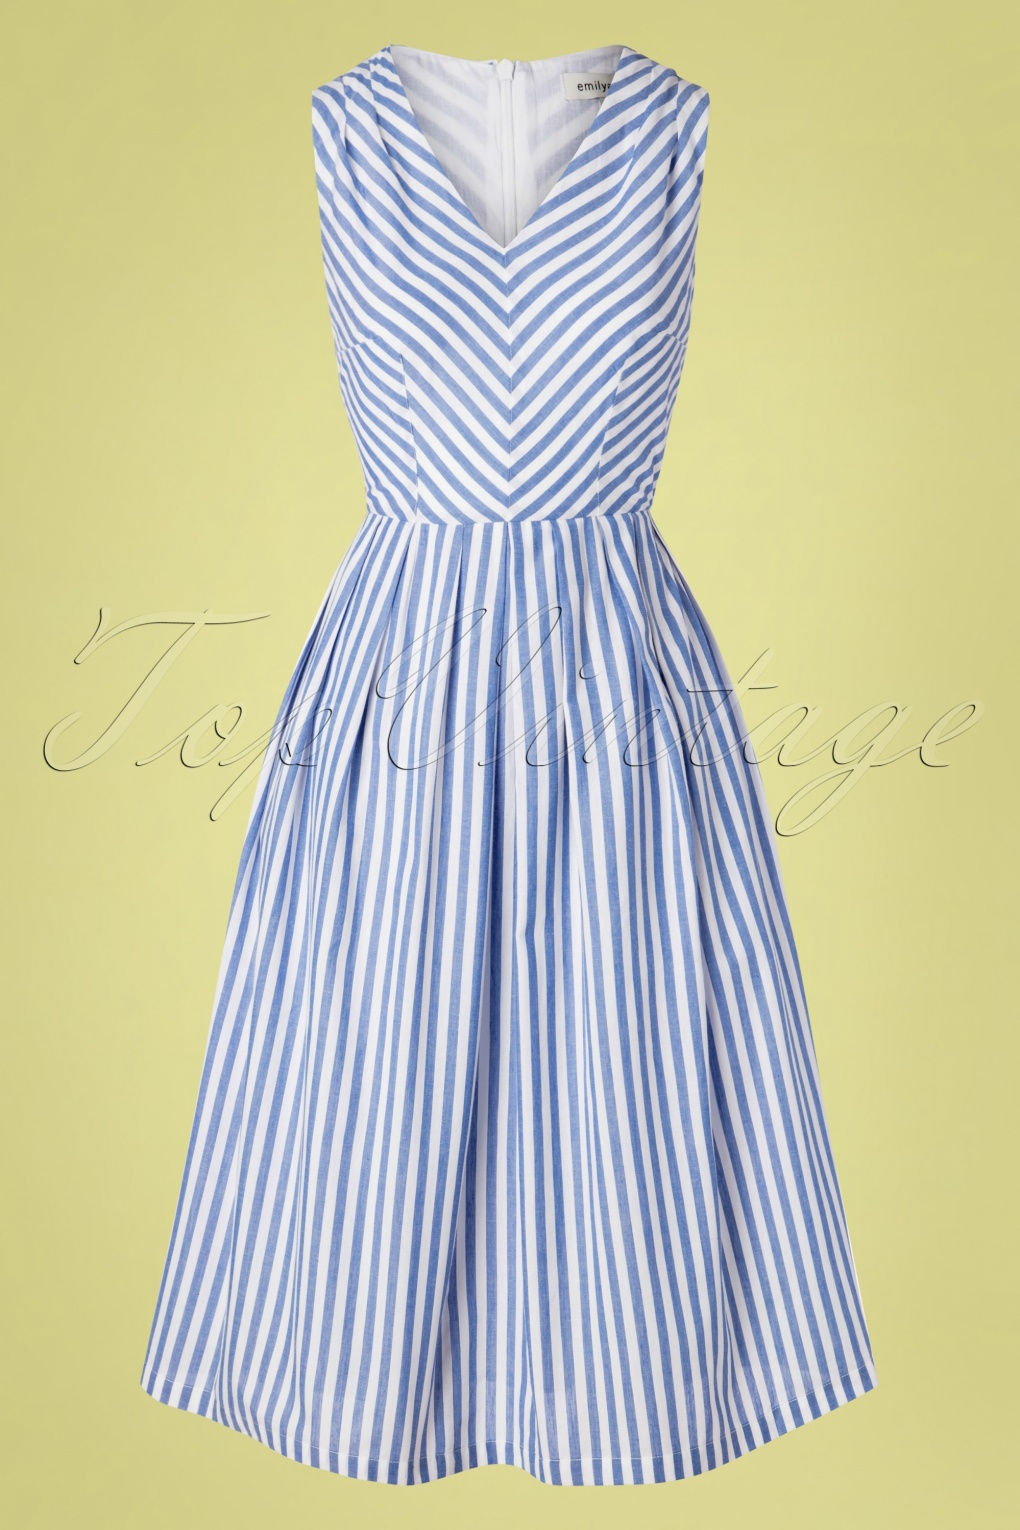 Vintage Cruise Outfits, Vacation Clothing 50s Josie Sunlounger Stripe Midi Dress in Blue and White �98.61 AT vintagedancer.com